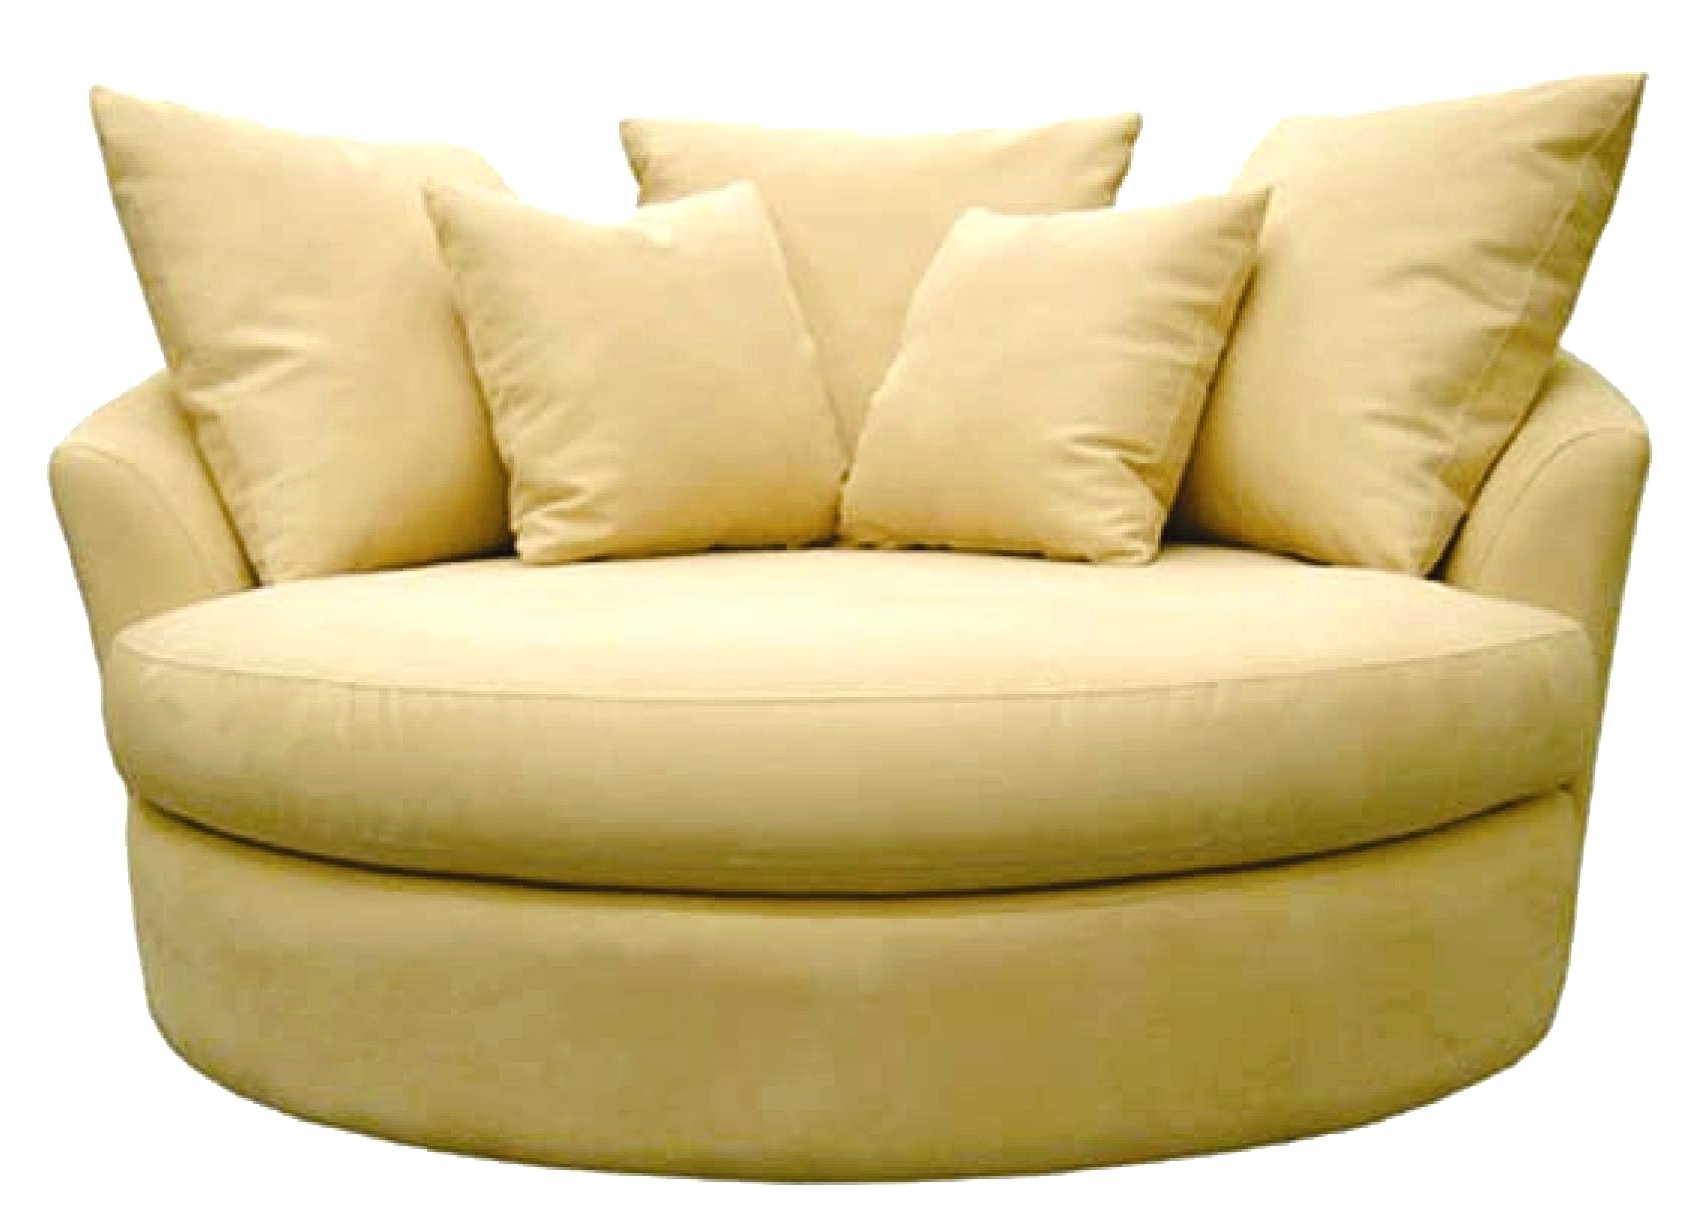 Big Round Sofa Chairs With 2019 Sofa : Round Sofa Chair Australia Round Sofa Chair Nz Big Round (View 4 of 20)